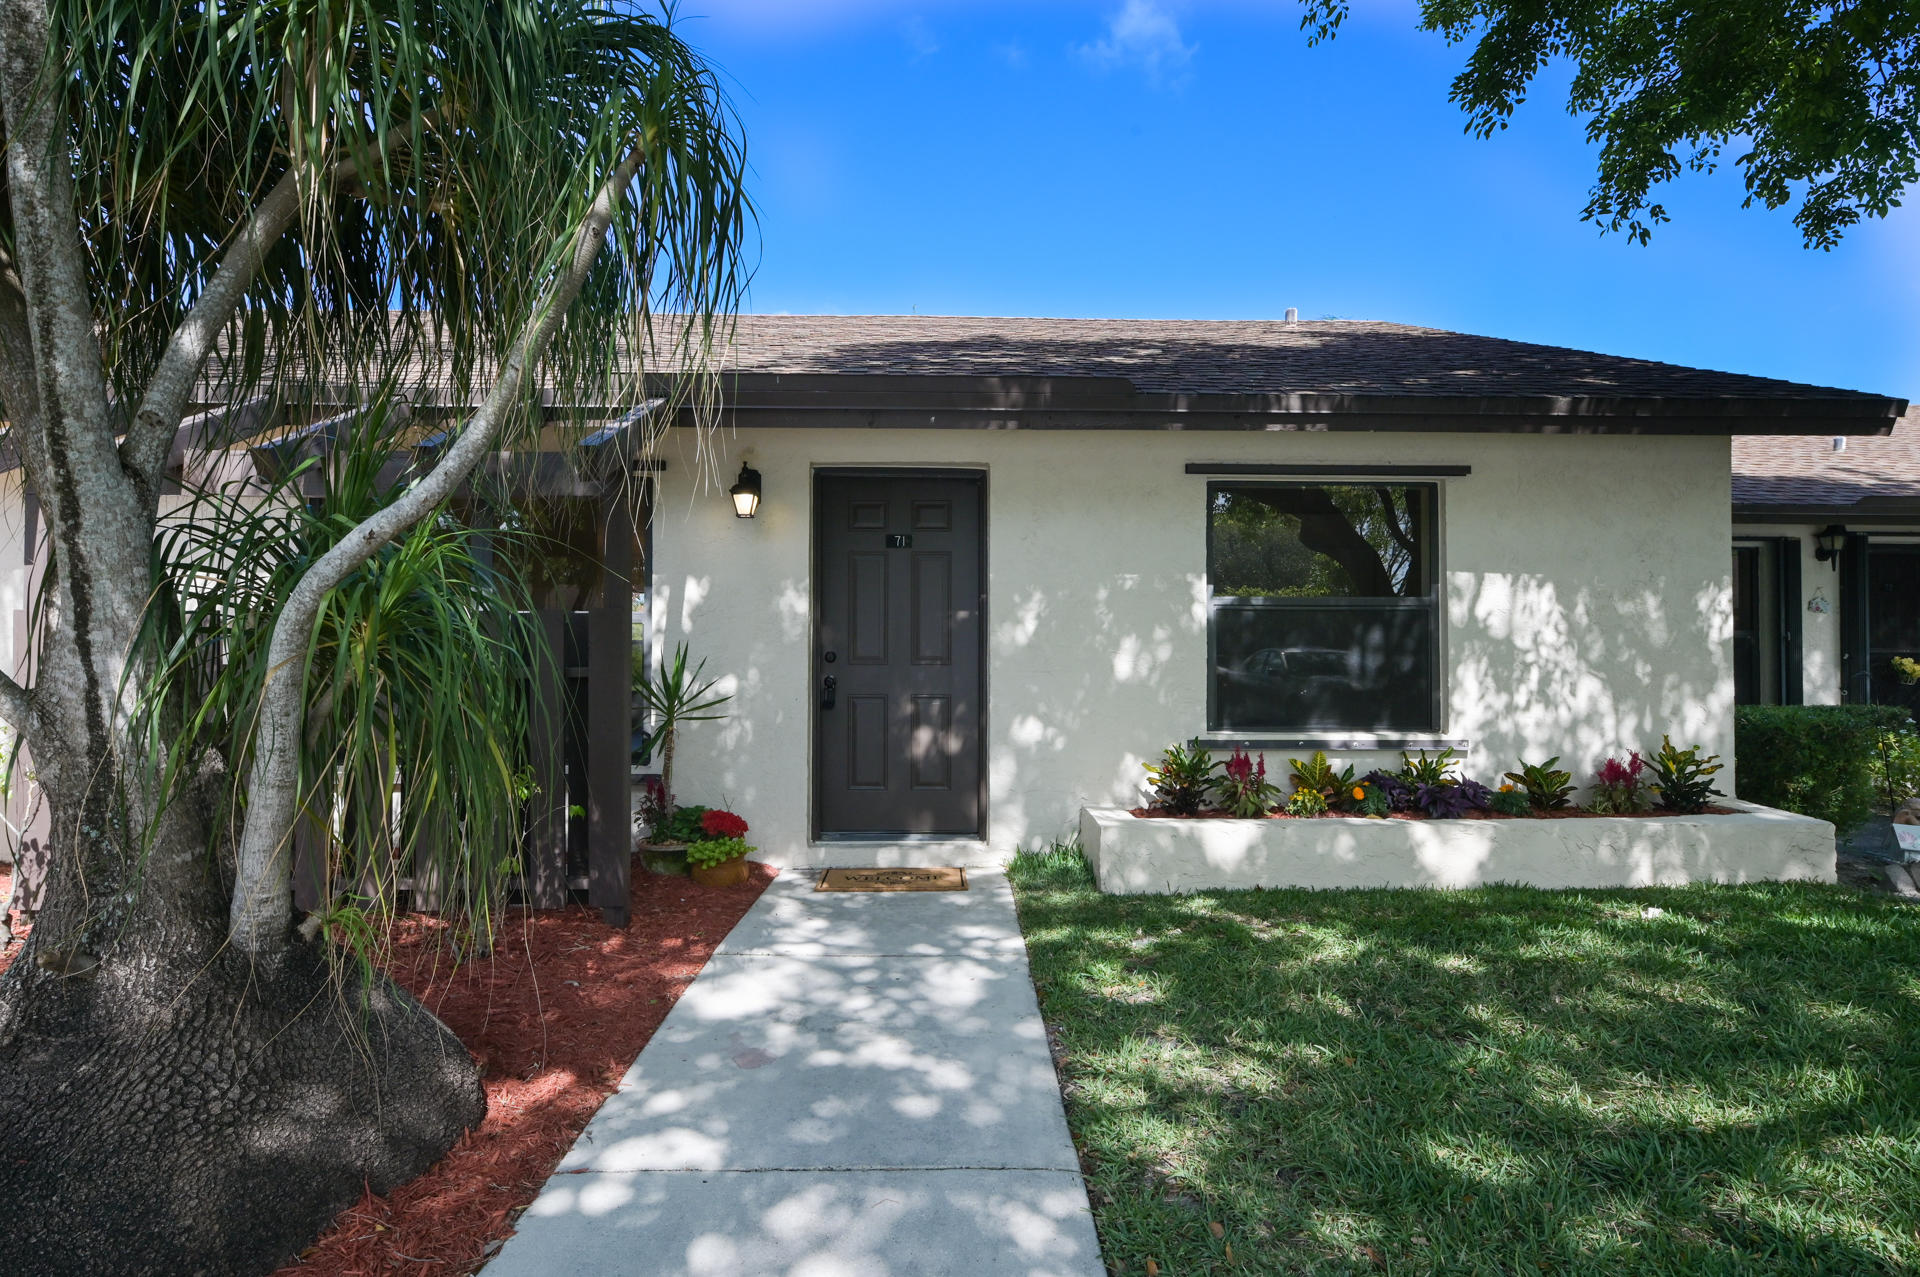 71 Via De Casas Norte Boynton Beach, FL 33426 small photo 3